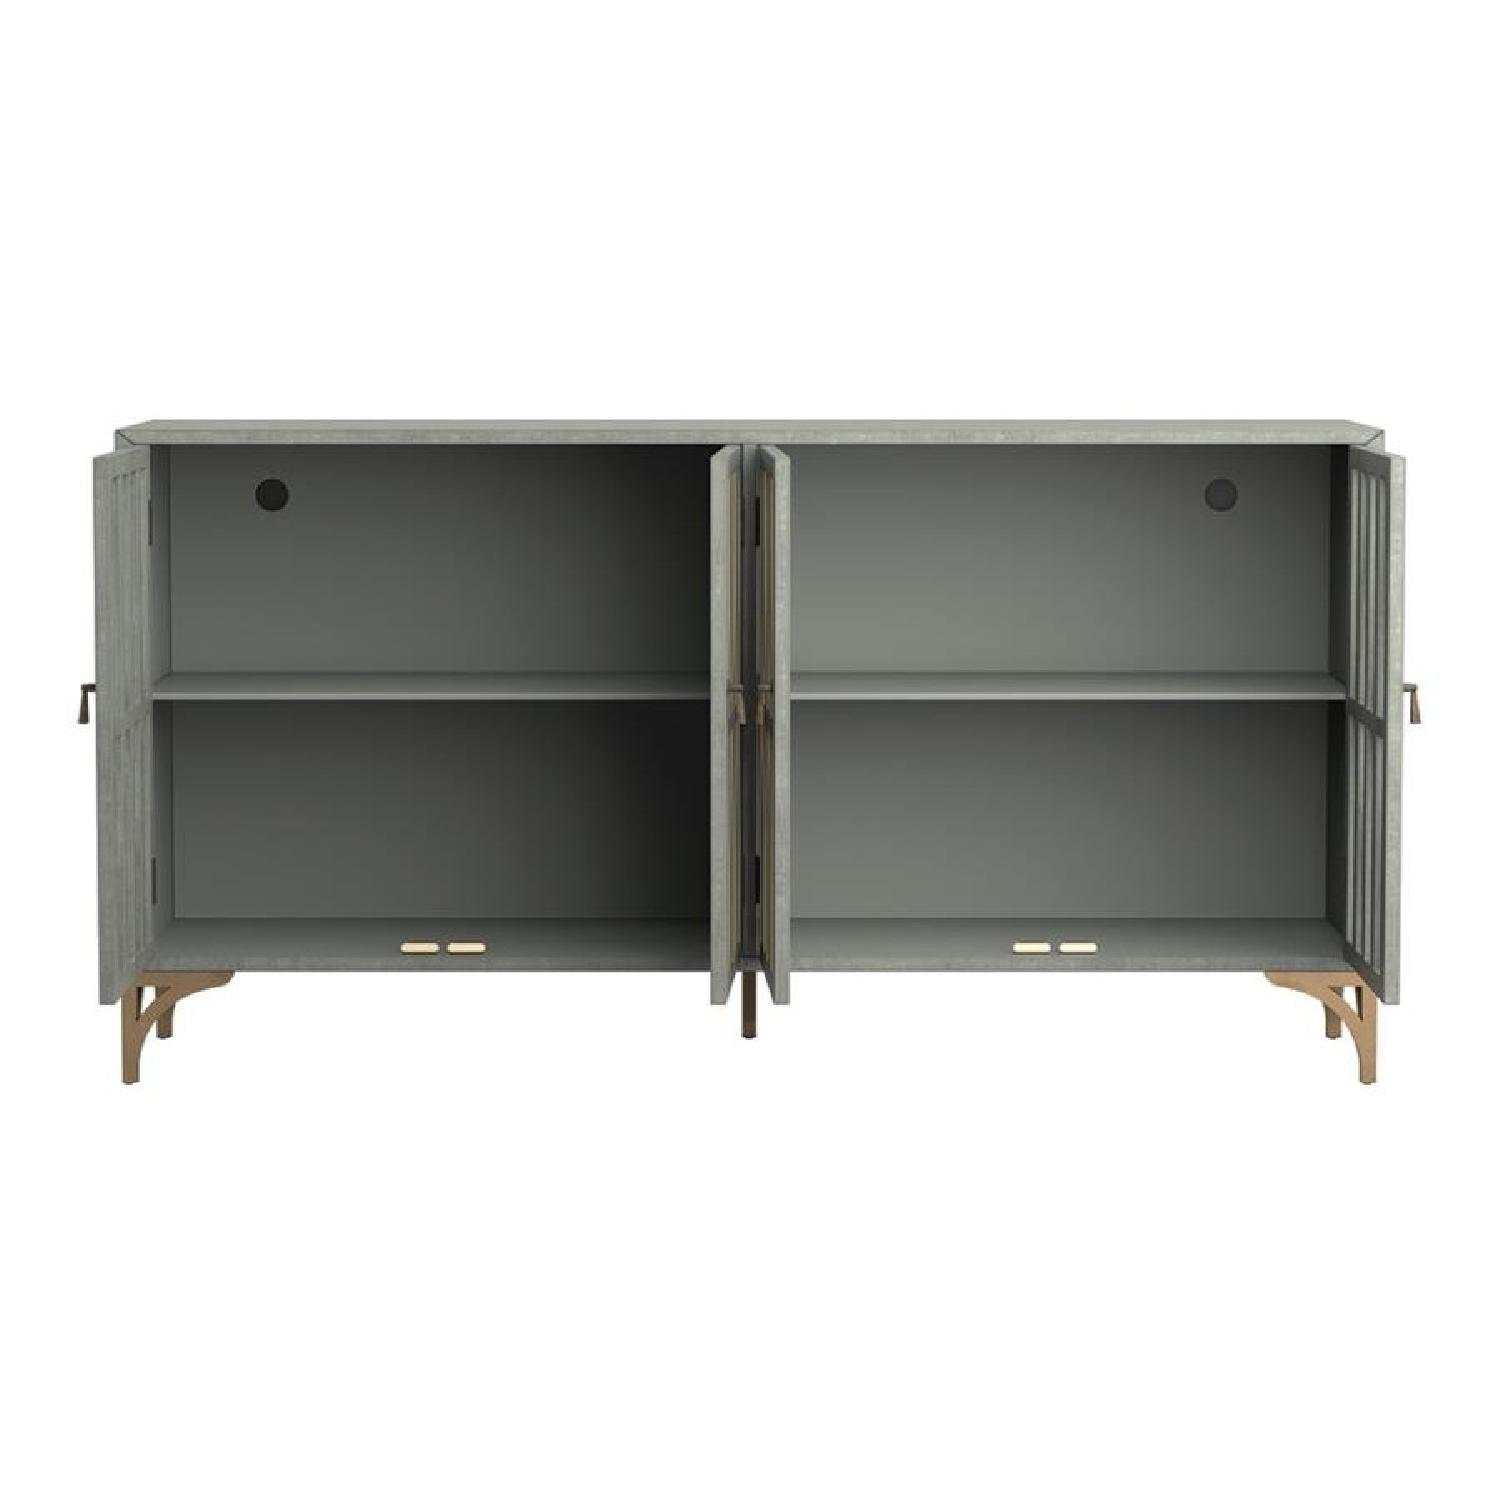 Contemporary Accent Cabinet In Grey Green w/ Bronze Hardware - image-3